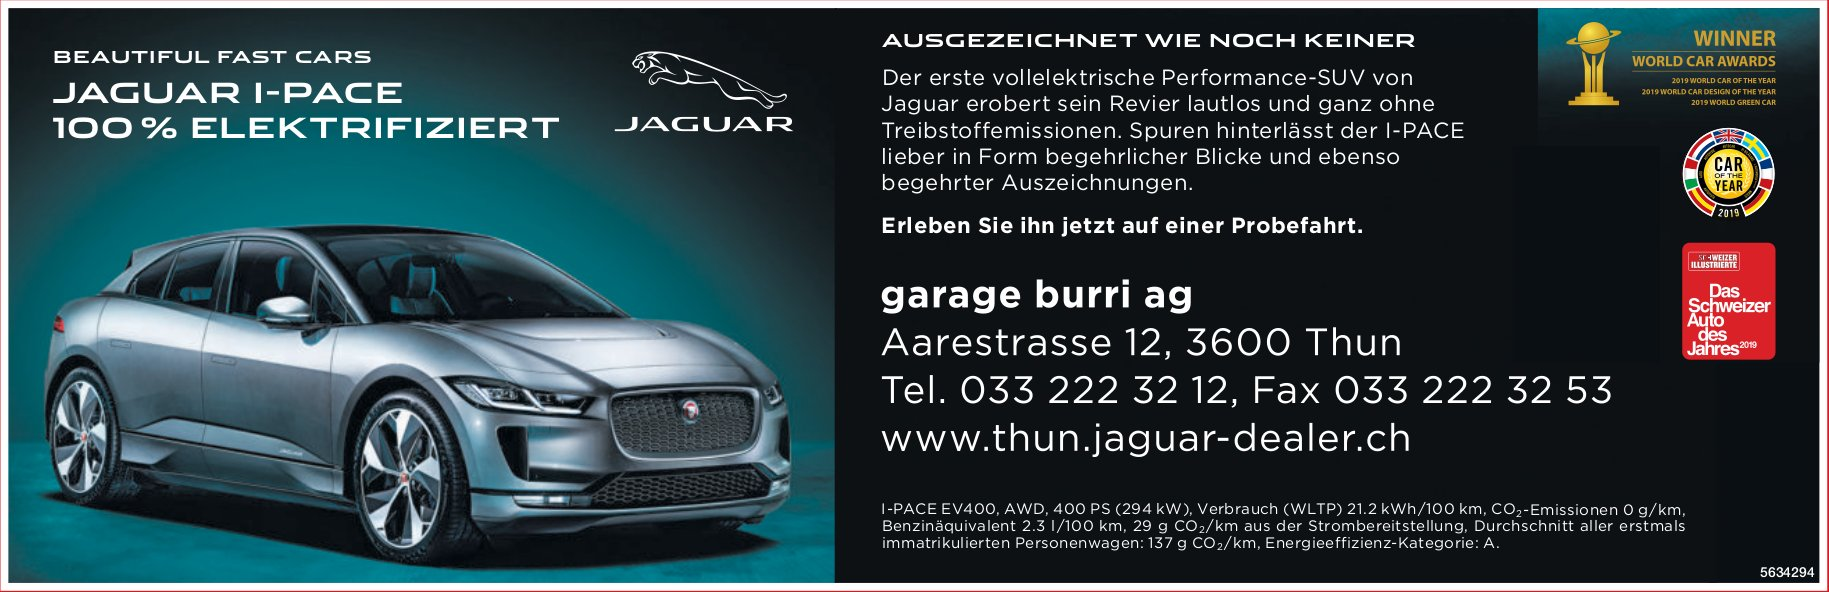 Garage BurriAG - BEAUTIFUL FAST CARS, JAGUAR I-PACE 100 % ELEKTRIFIZIERT